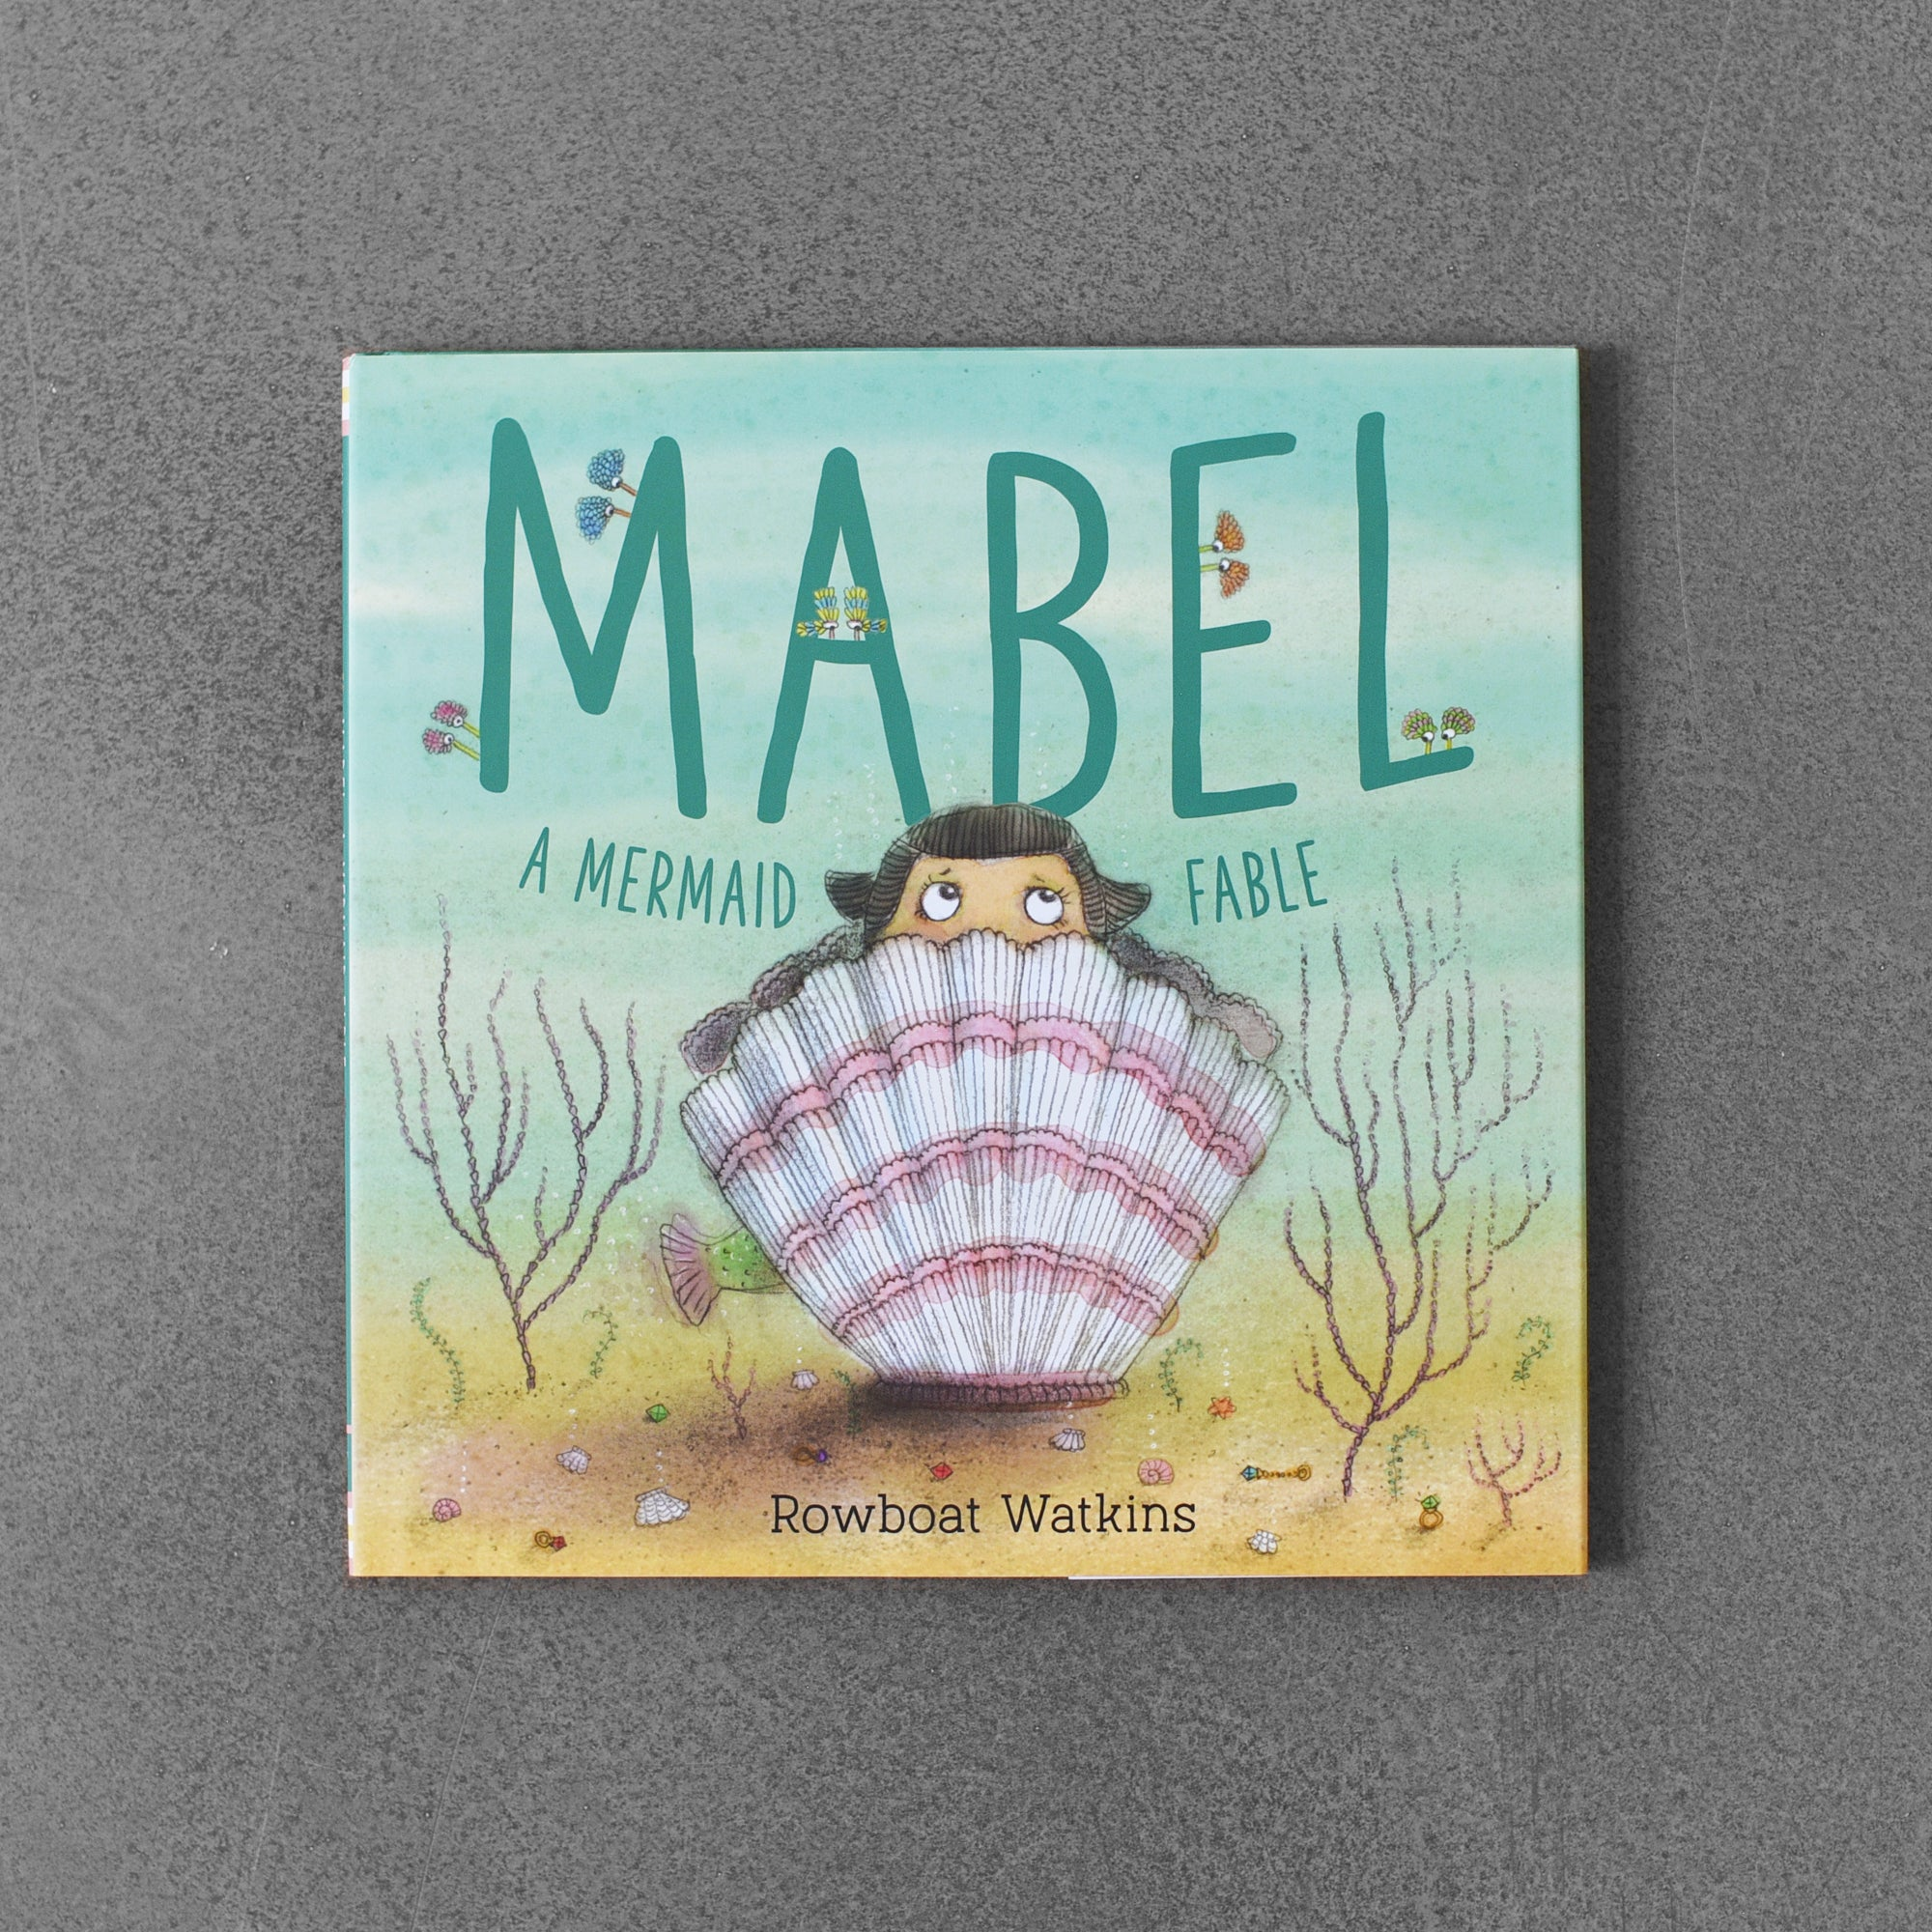 Mabel: A Mermaid Fable - Rowboat Watkins